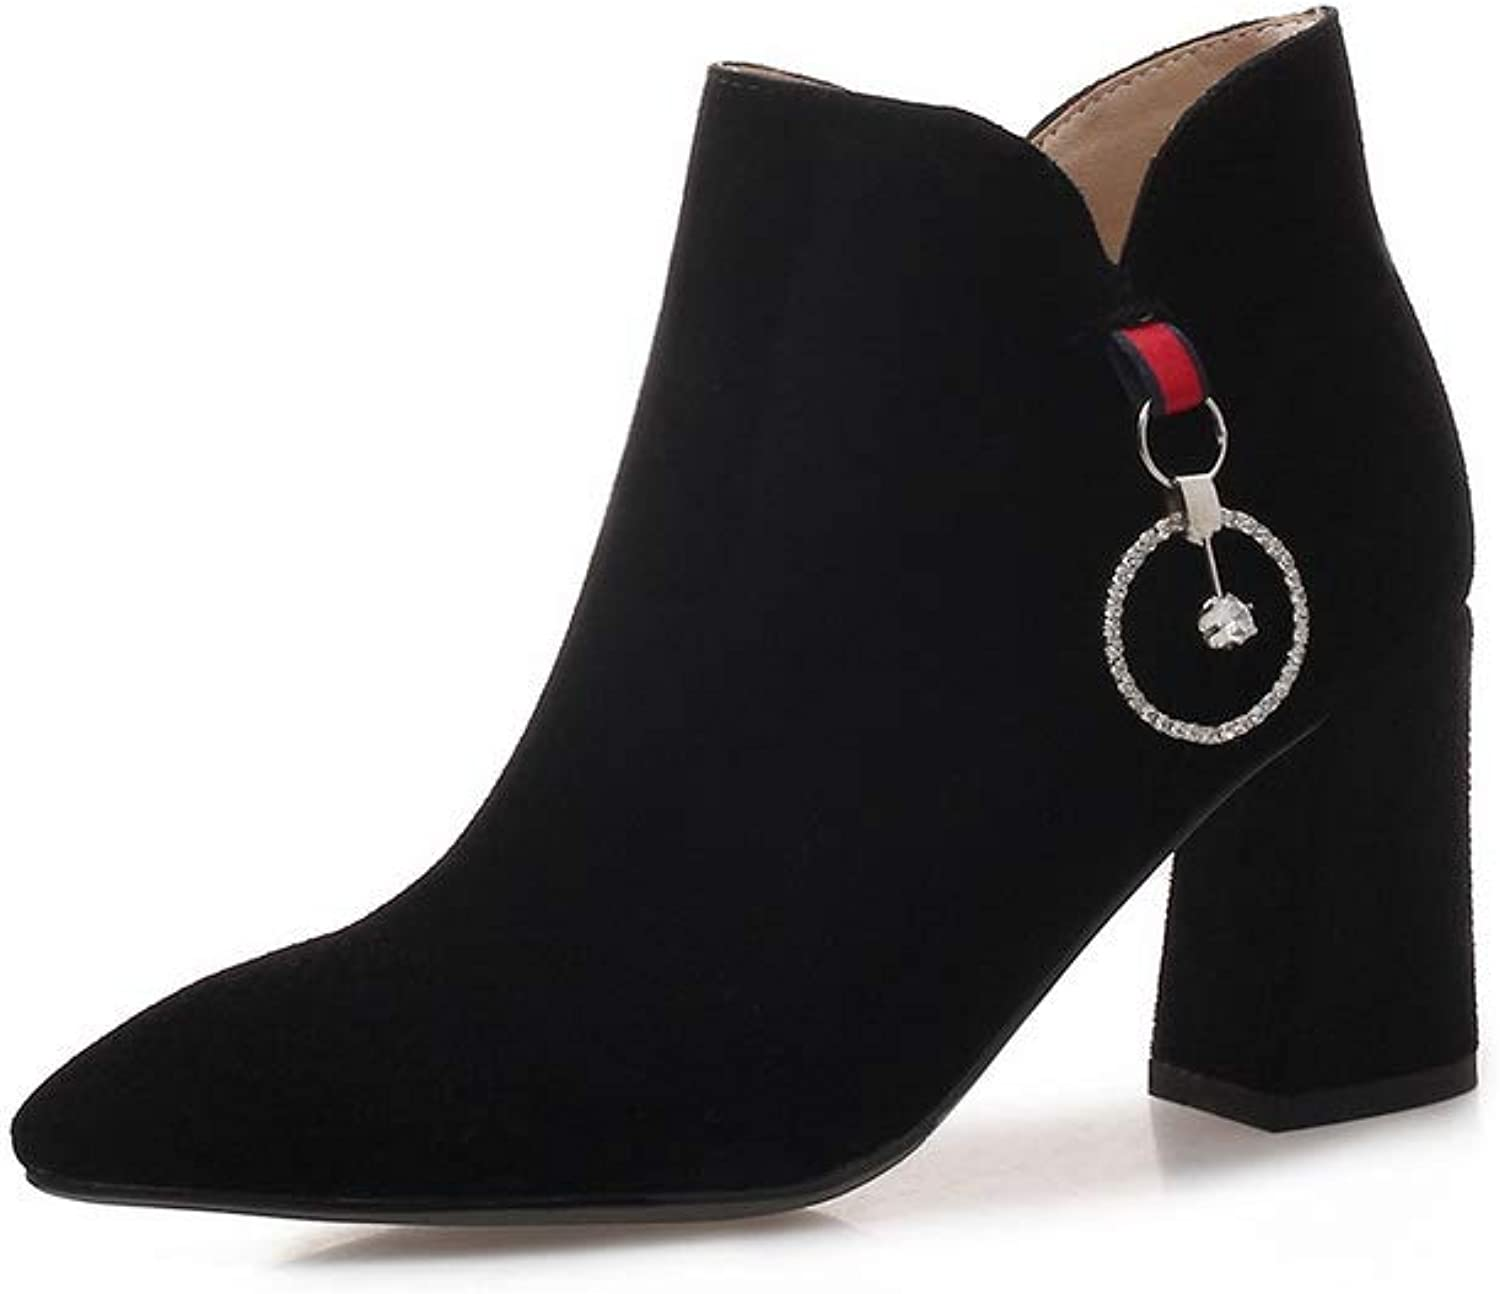 AdeeSu Womens Square Heels Chunky Heels Pointed-Toe Imitated Suede Boots SXE04190